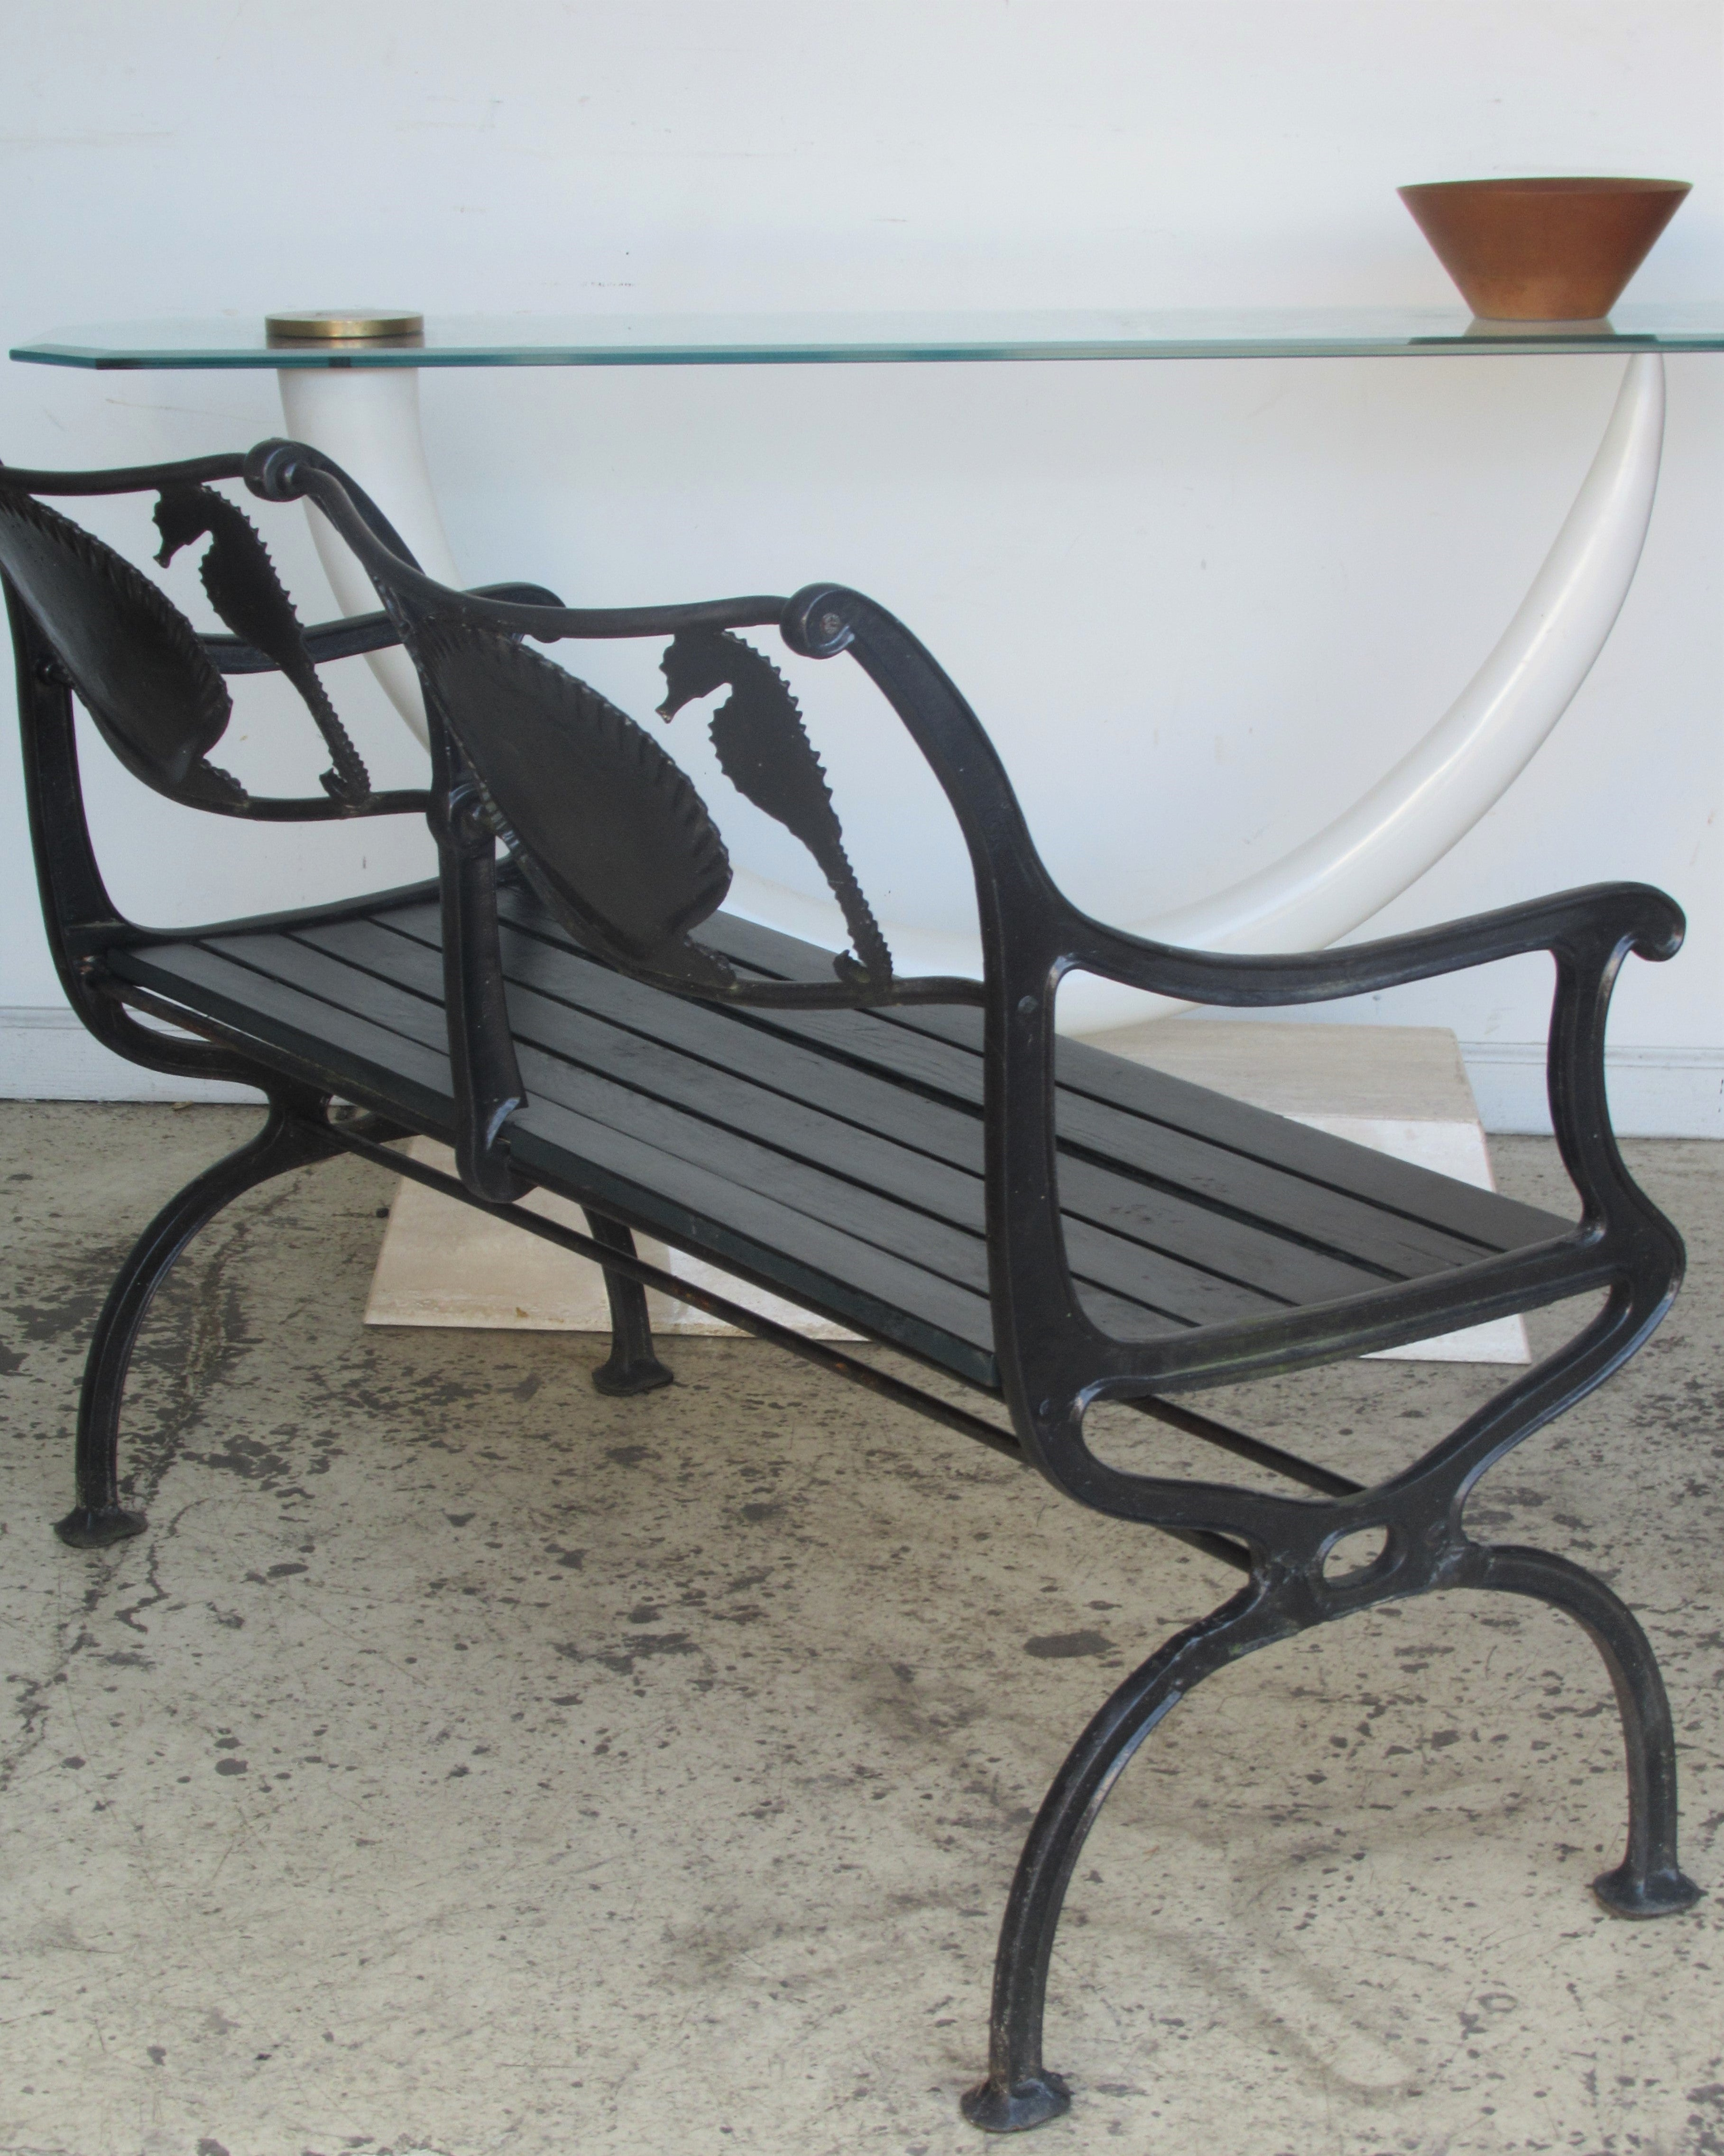 sale for org strap outdoor bench iron garden img furniture id forged f at building antique metal century